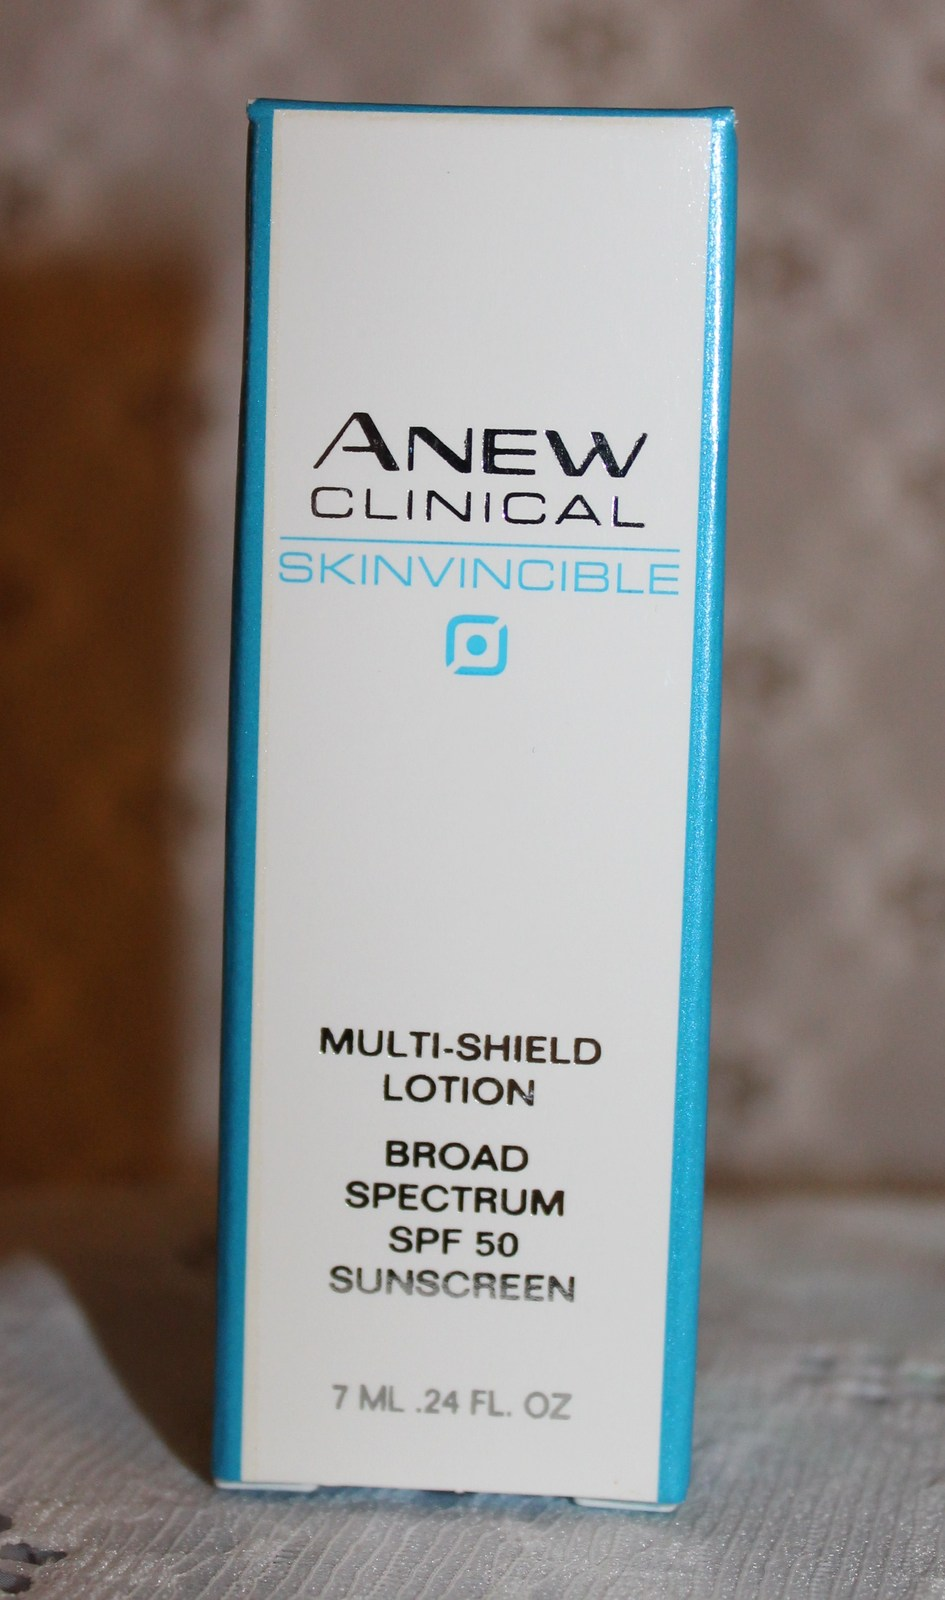 Anew Clinical - Skinvincible Multi Shield Lotion - 2.4 Oz